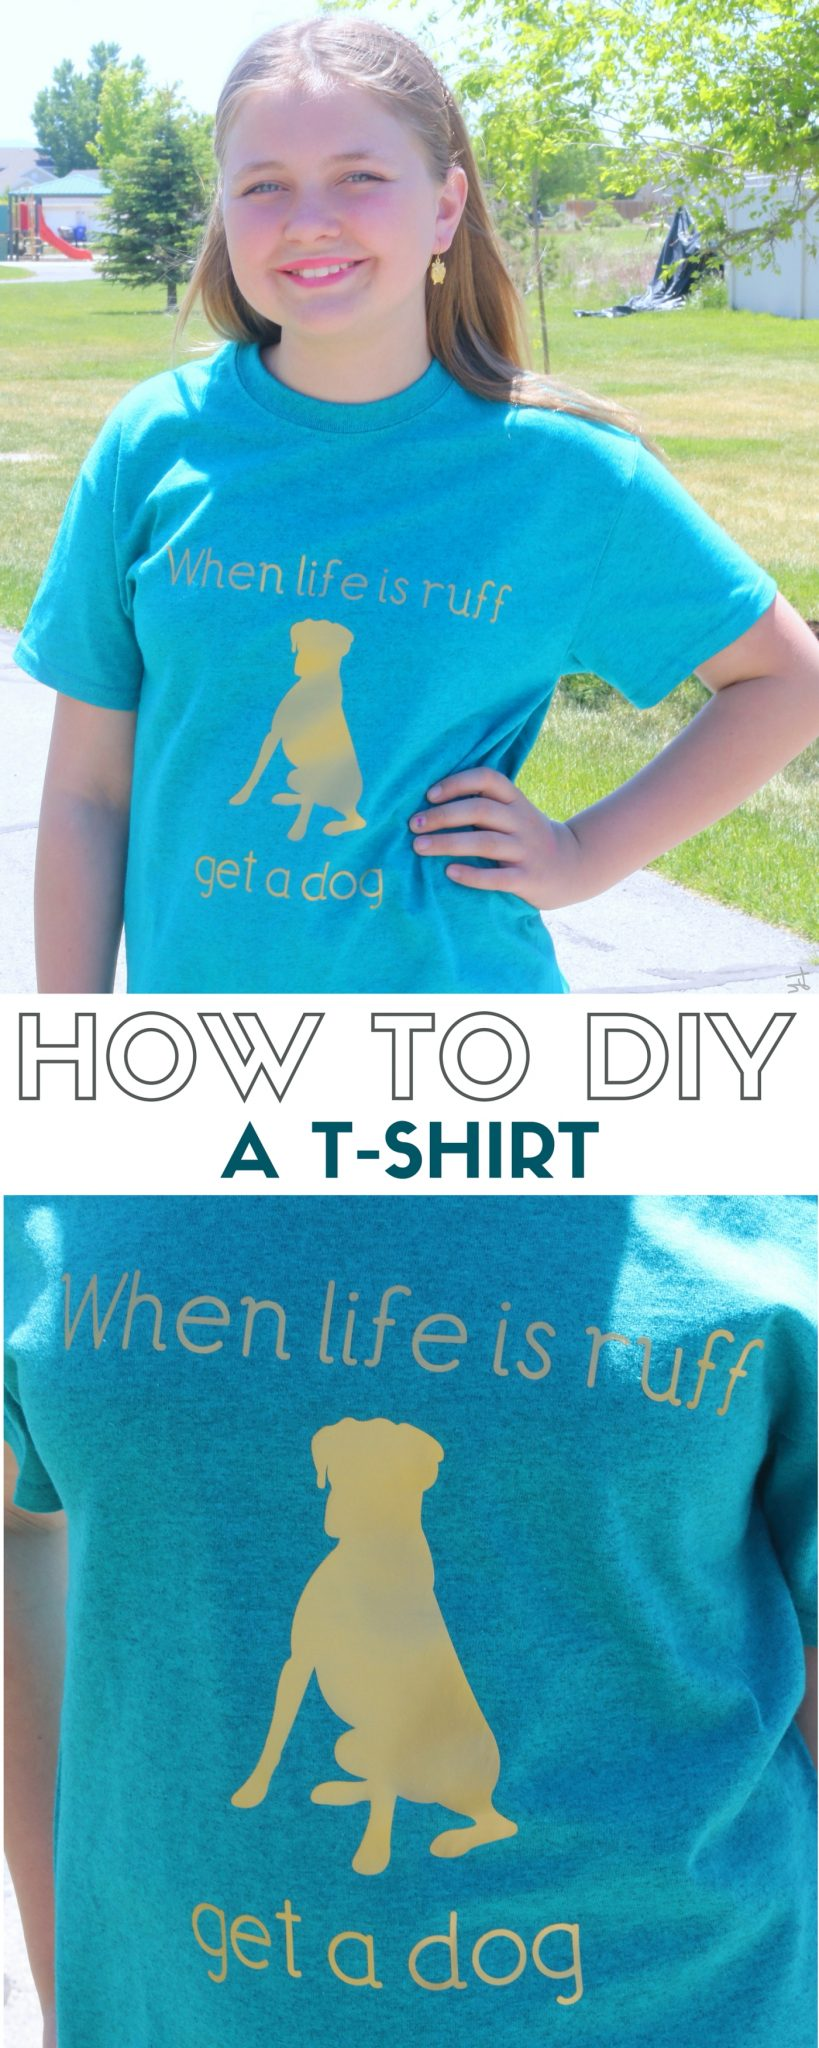 How To Diy A T Shirt With Iron On Transfer The Crafty